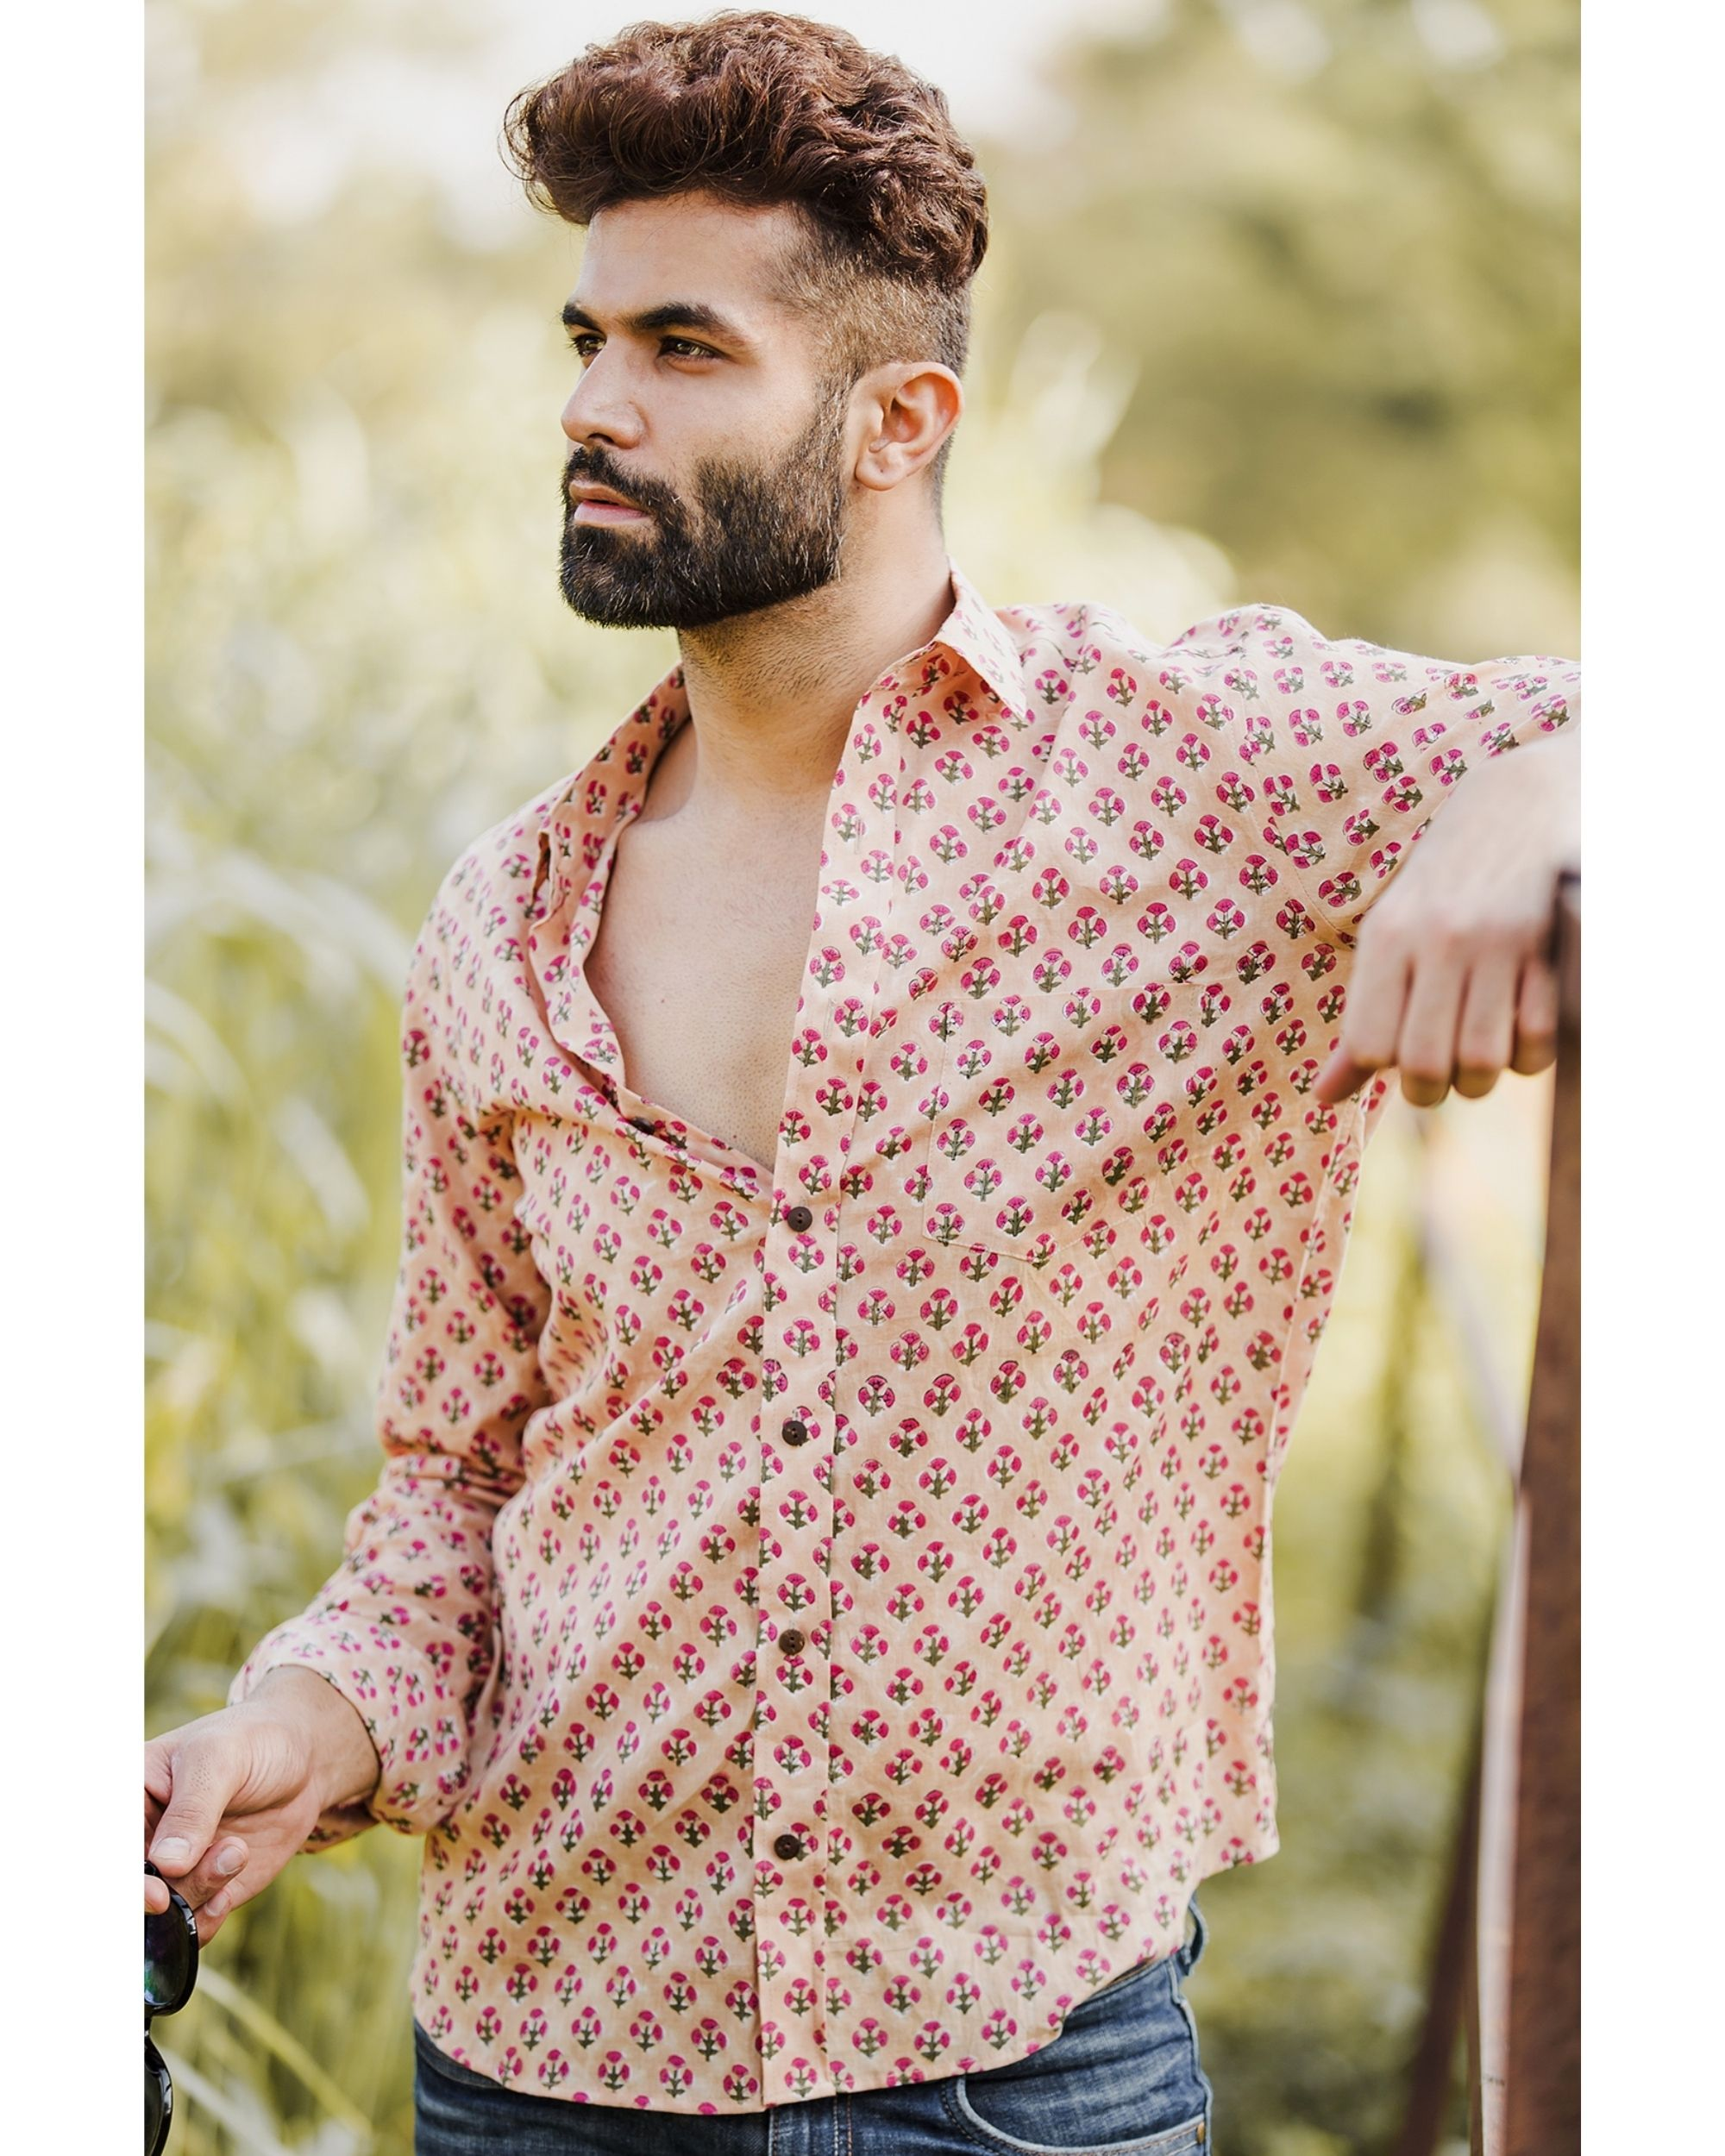 Beige and pink floral printed shirt